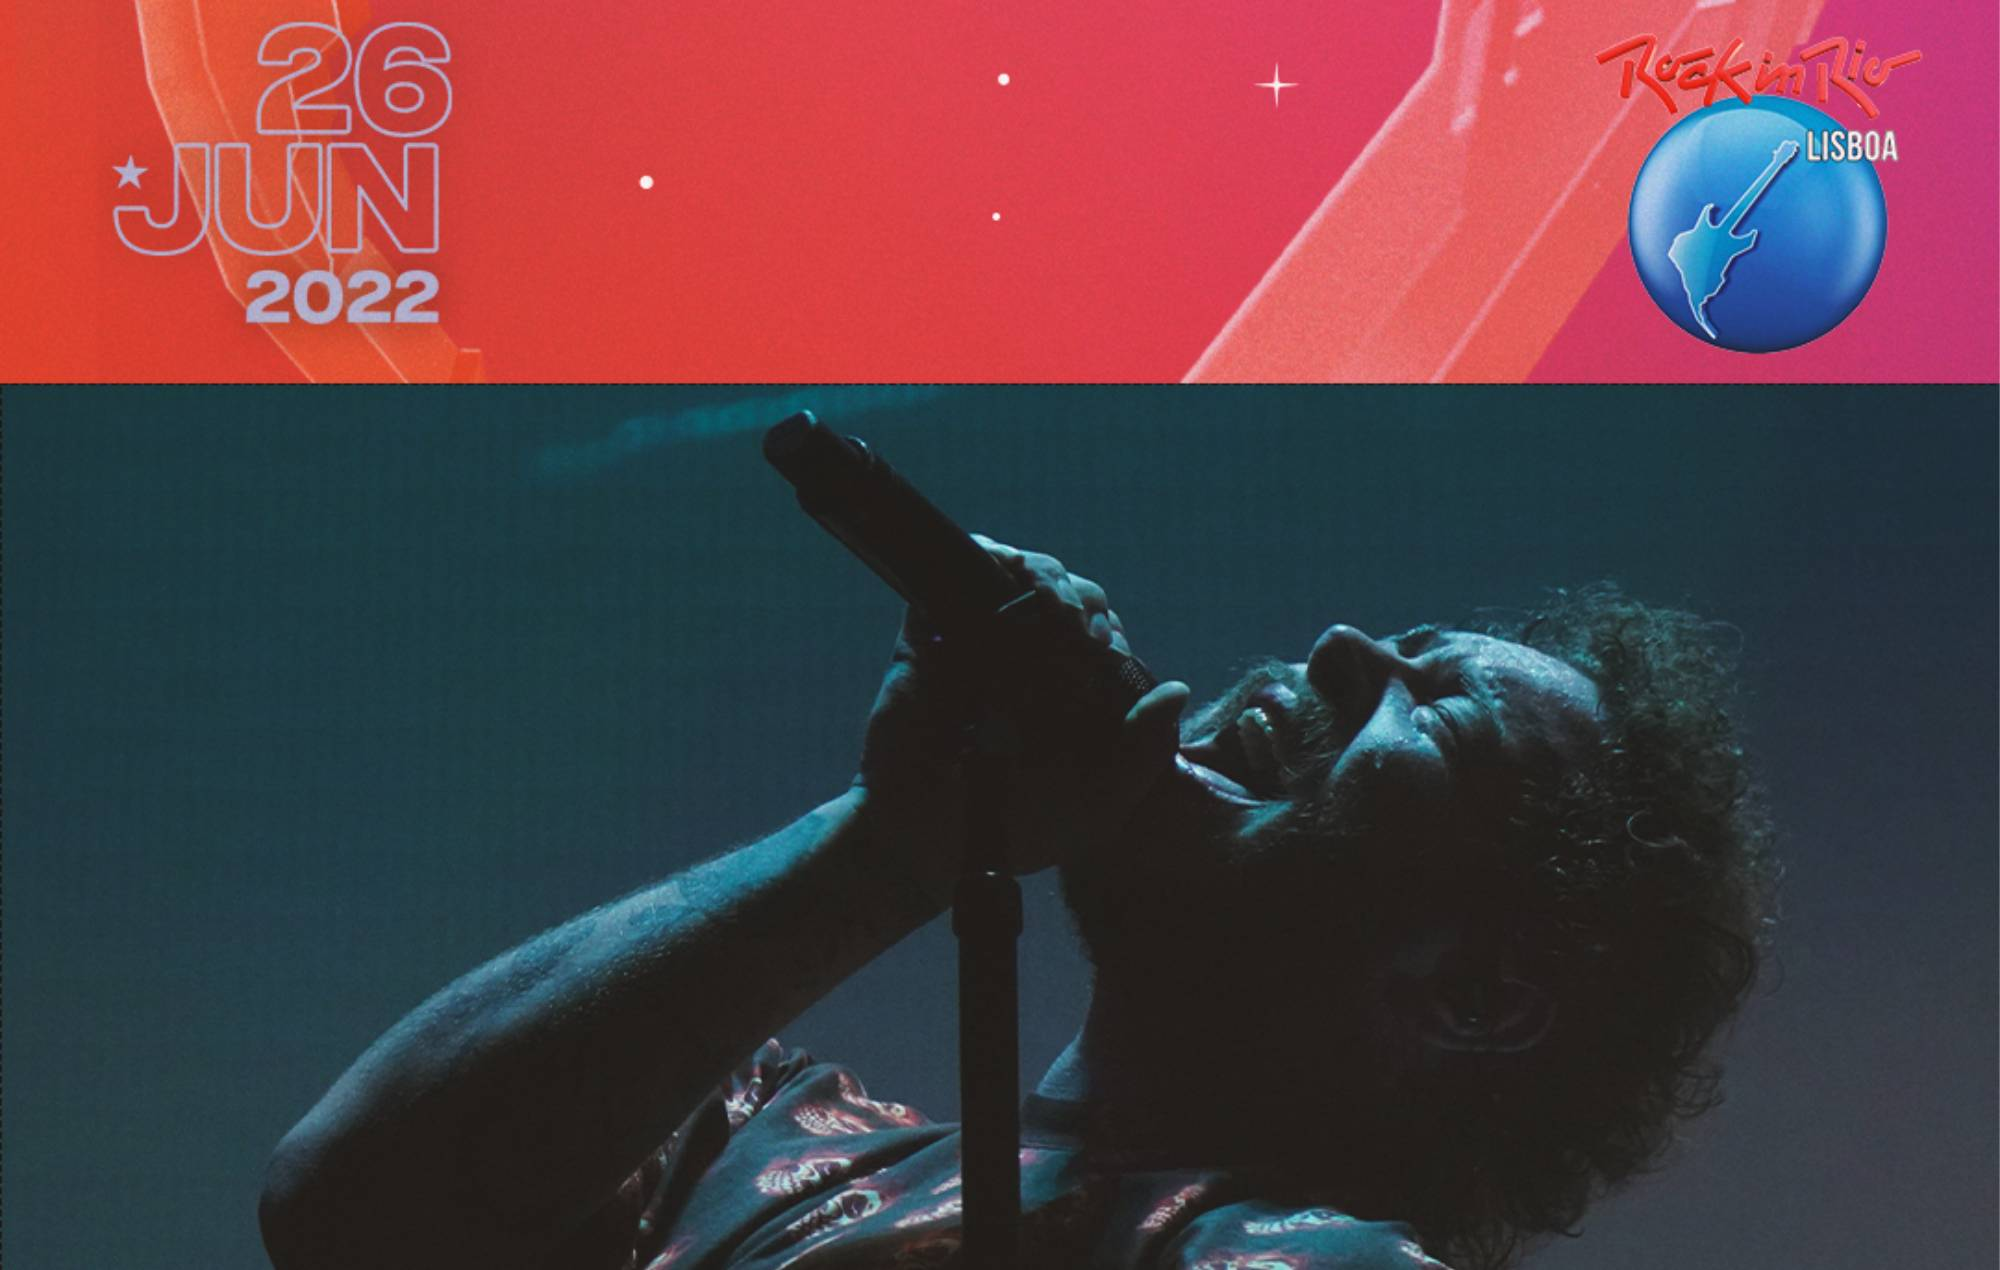 Post Malone joins line-up for Rock in Rio Lisboa 2022